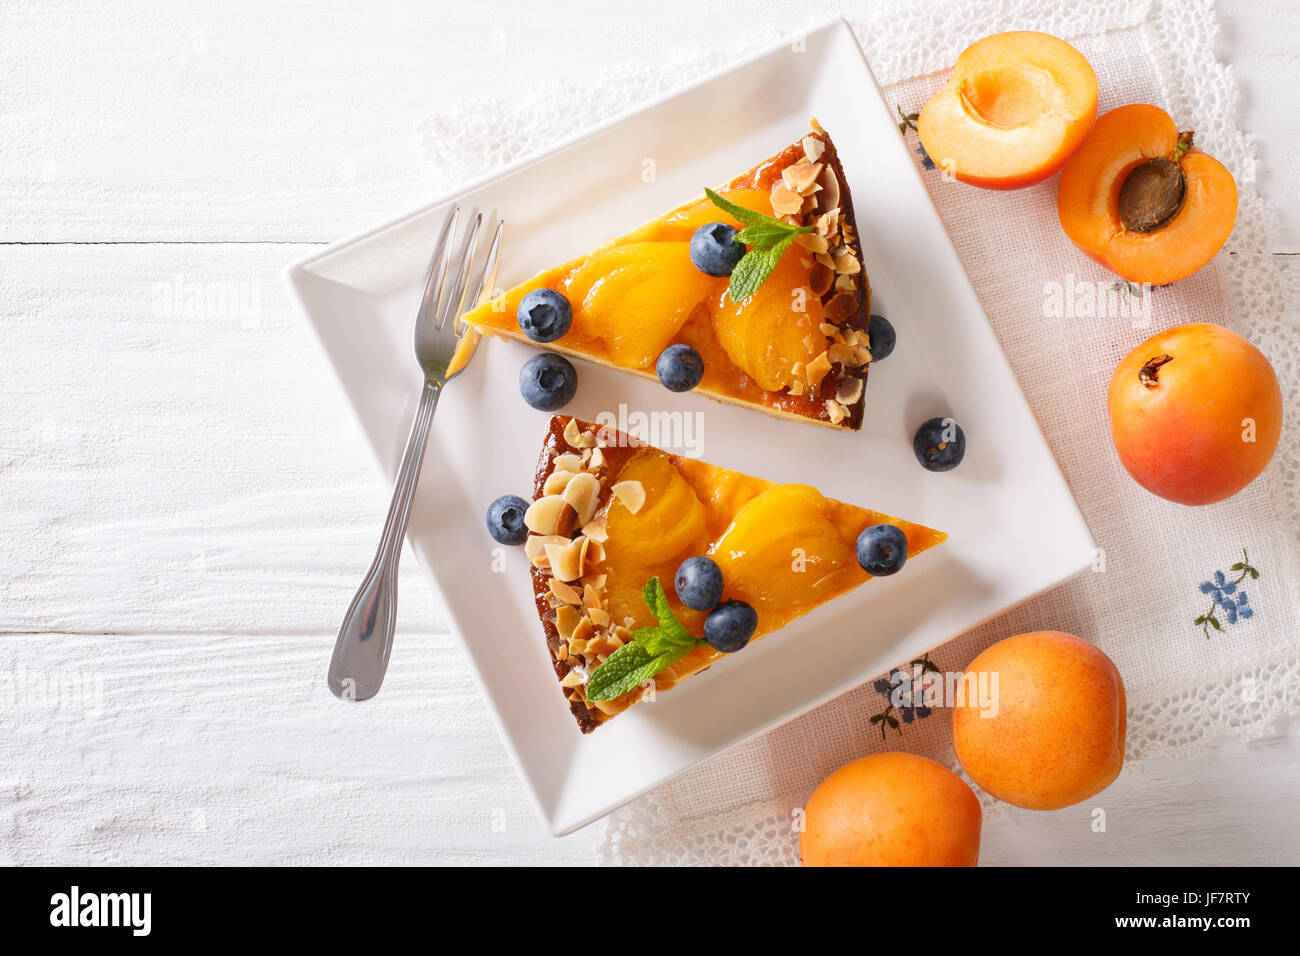 Apricot cheesecake with blueberry close-up on a plate. horizontal view from above - Stock Image